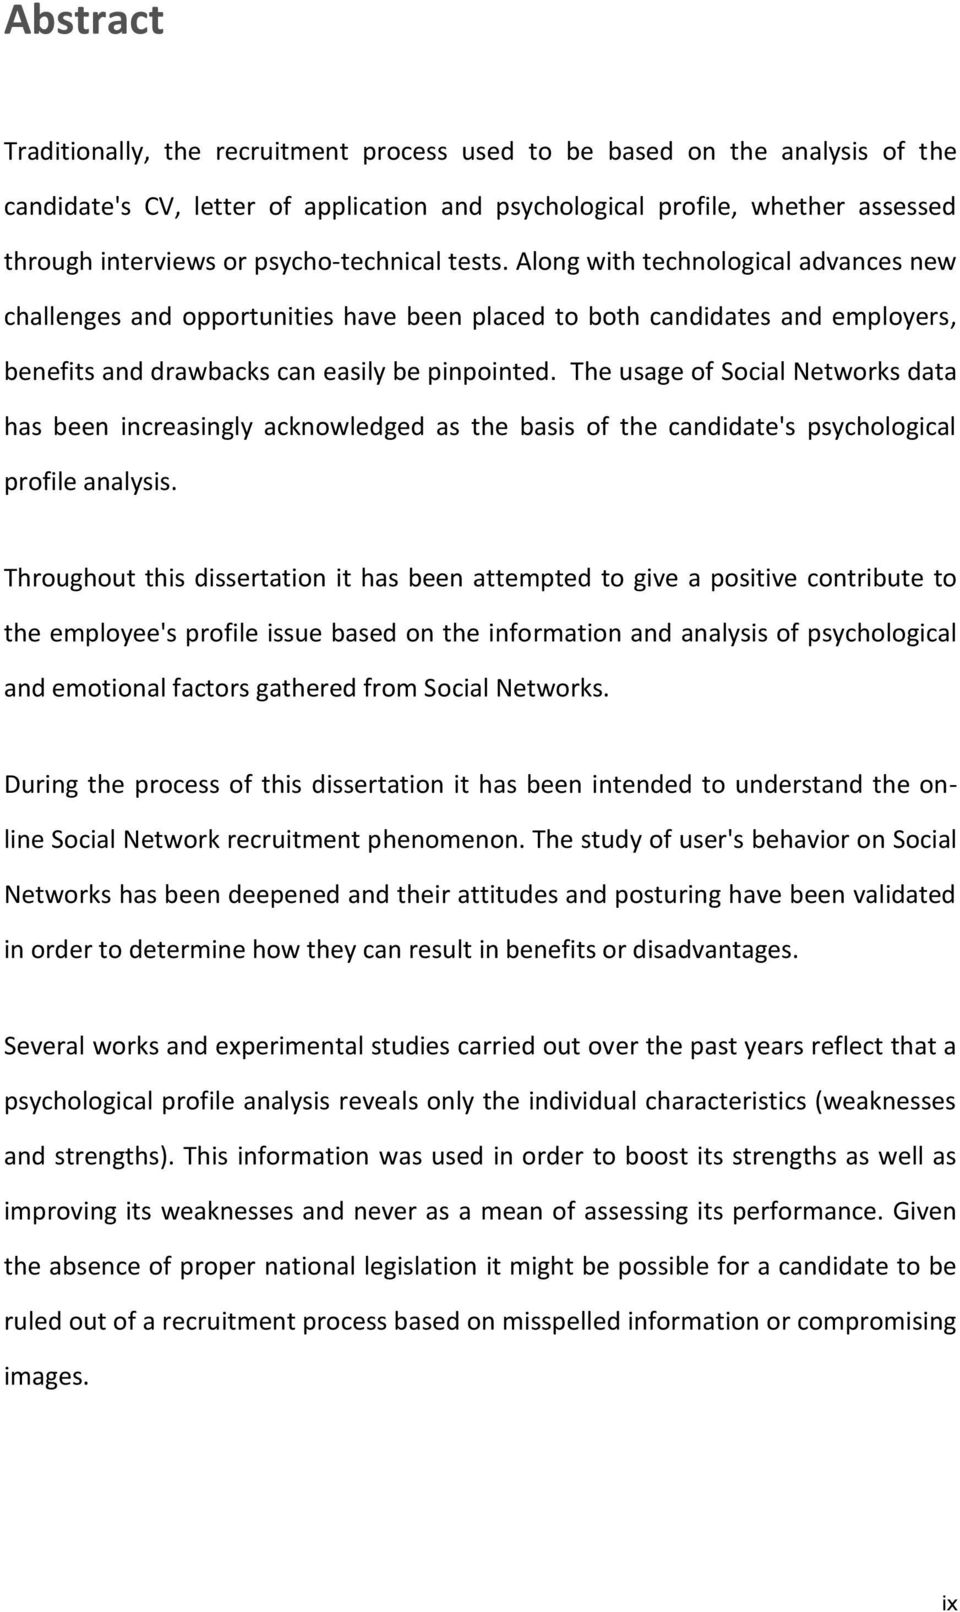 The usage of Social Networks data has been increasingly acknowledged as the basis of the candidate's psychological profile analysis.